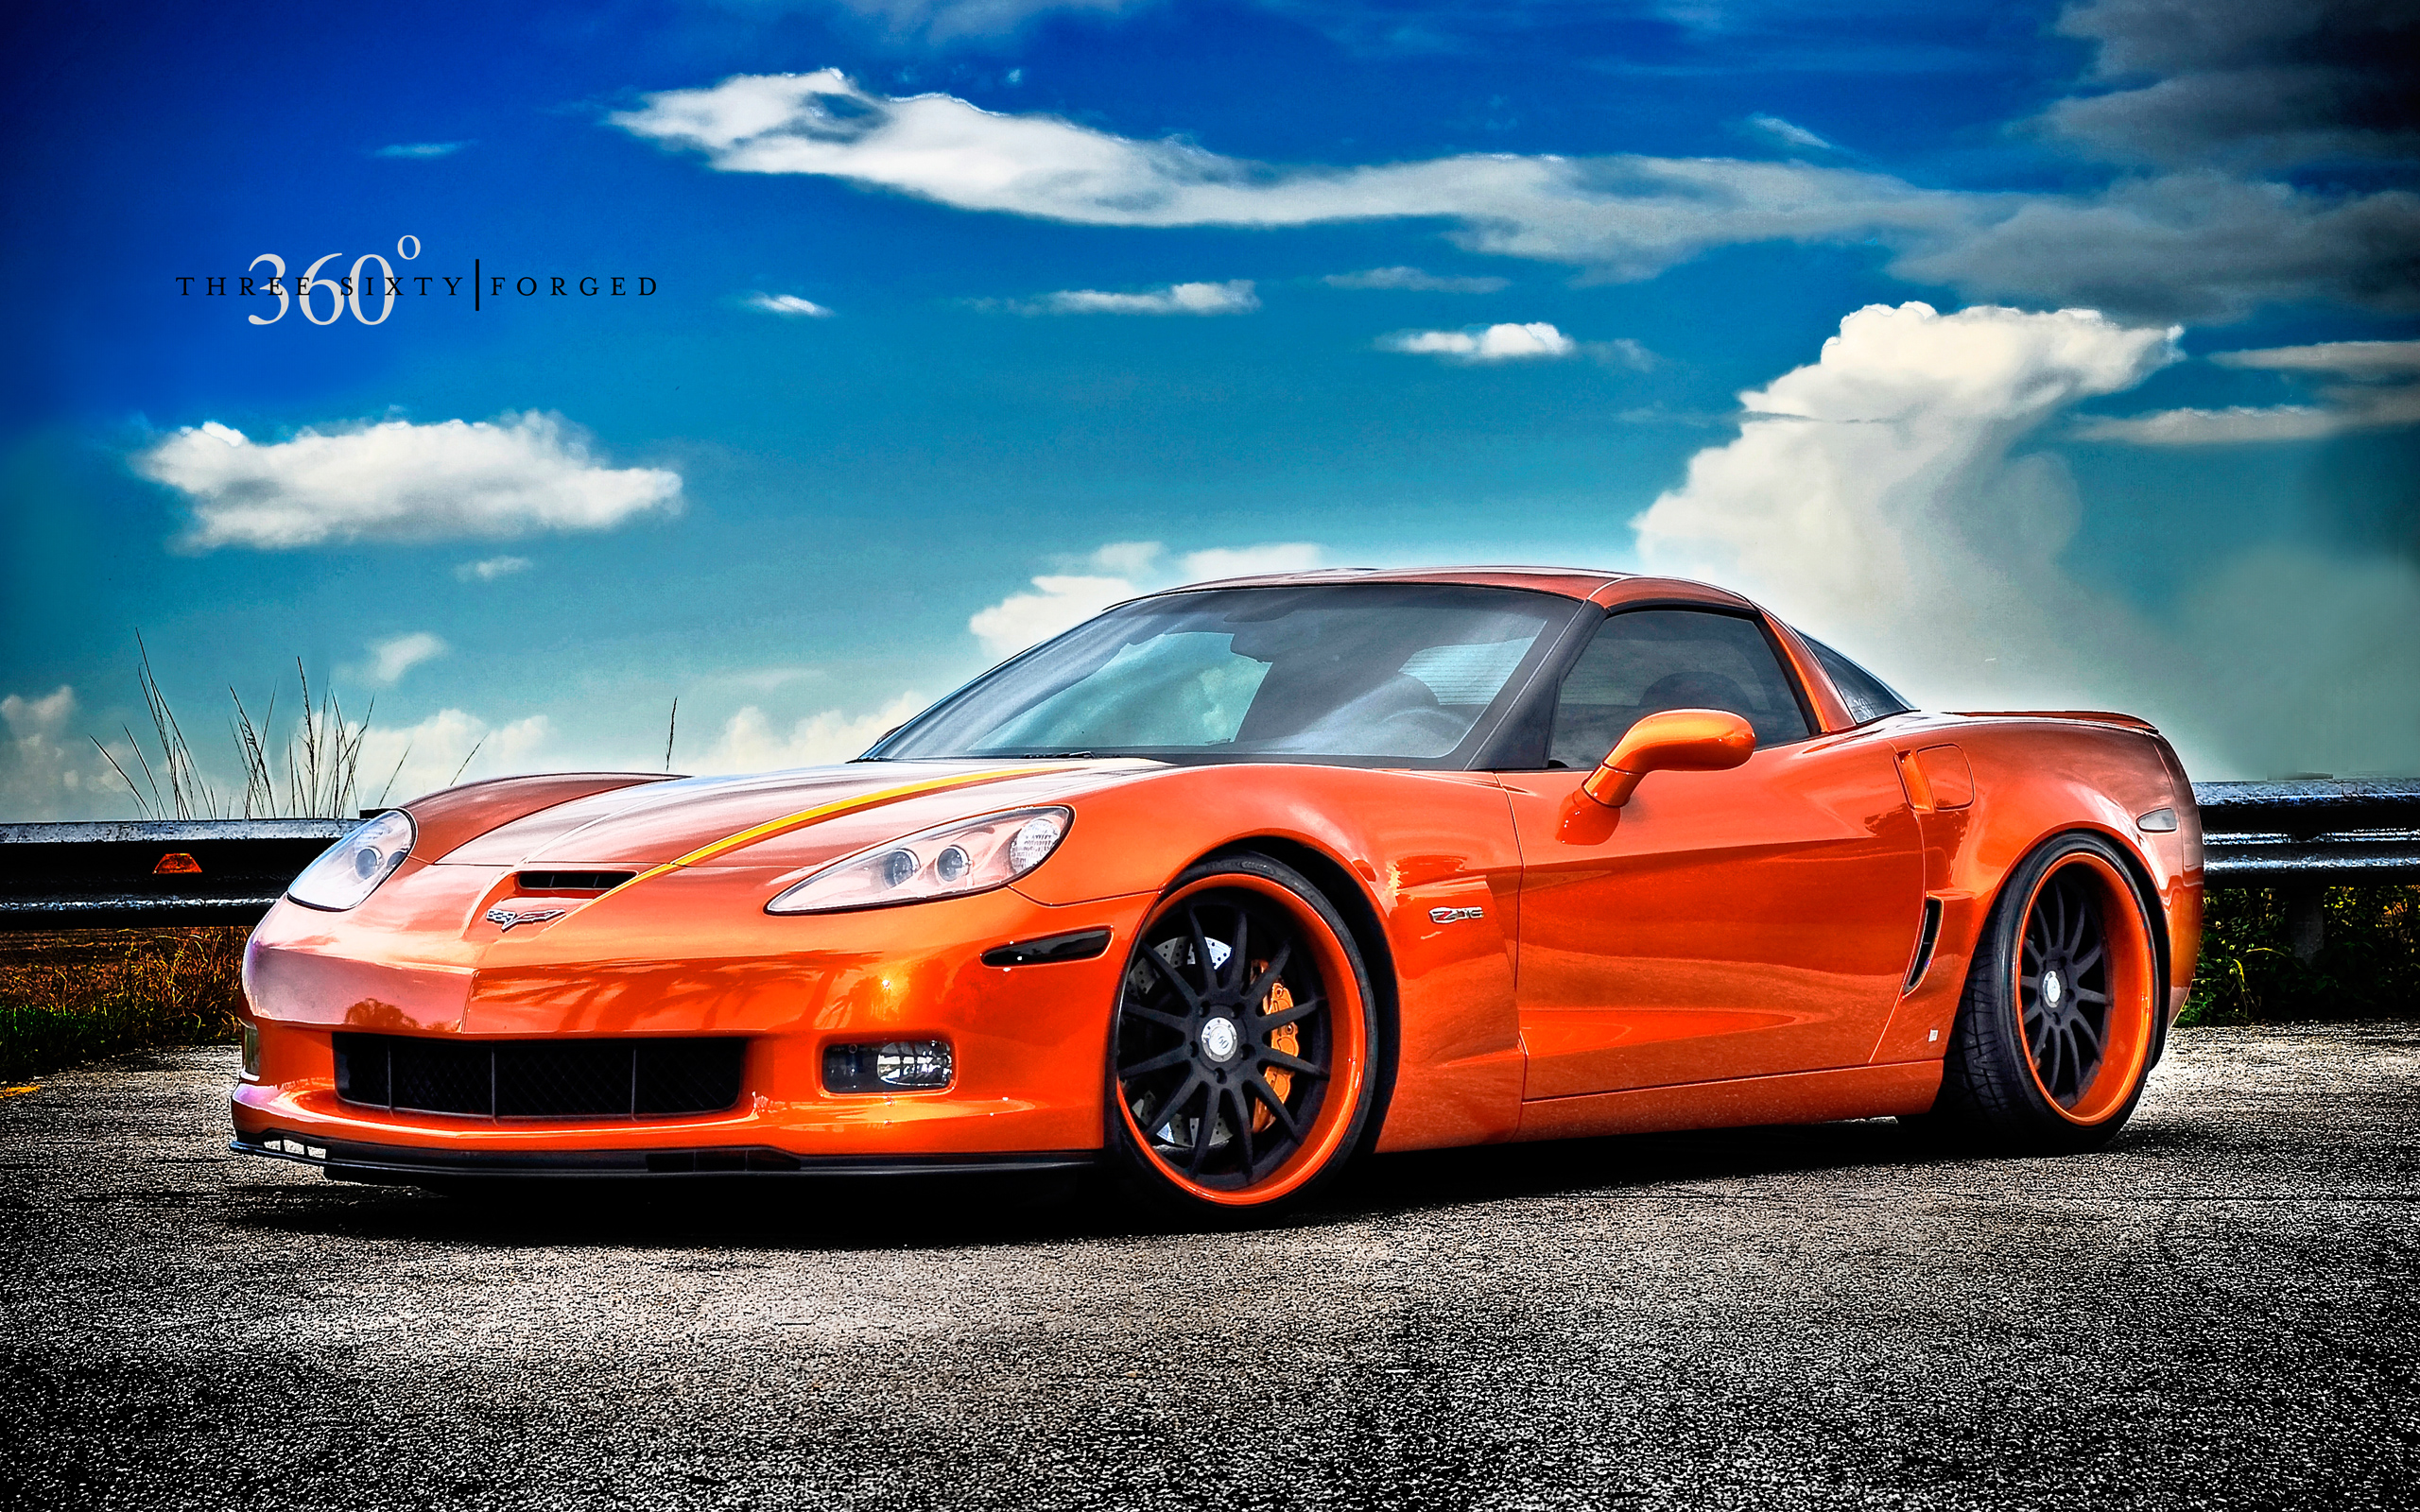 Corvette Z06 on 360 Forged Wheels Wallpaper HD Car Wallpapers 2560x1600